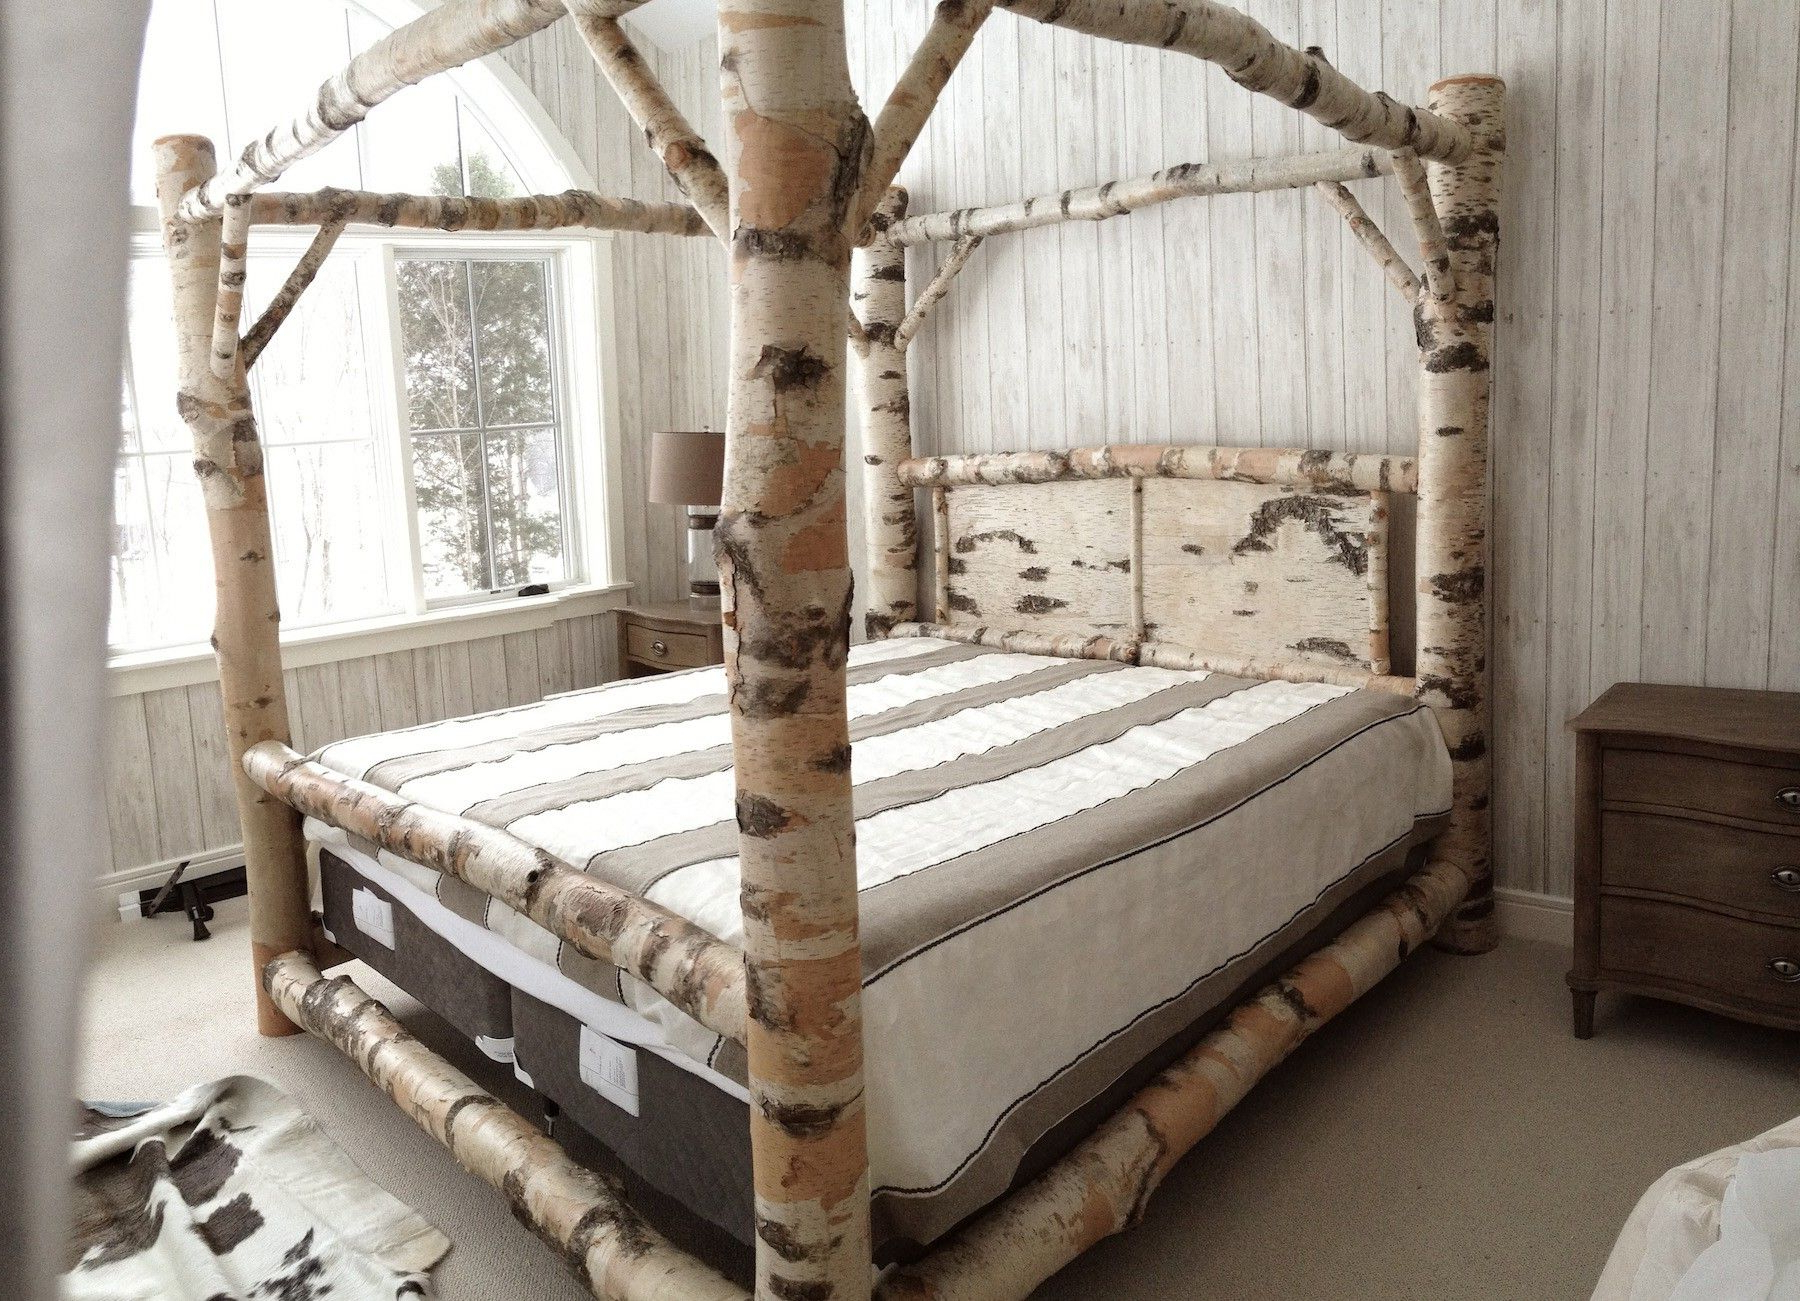 2019 Bamboo Daybeds With Canopy Intended For Bamboo Bedroom Furniture For Traditional Bedroom Look (View 19 of 25)